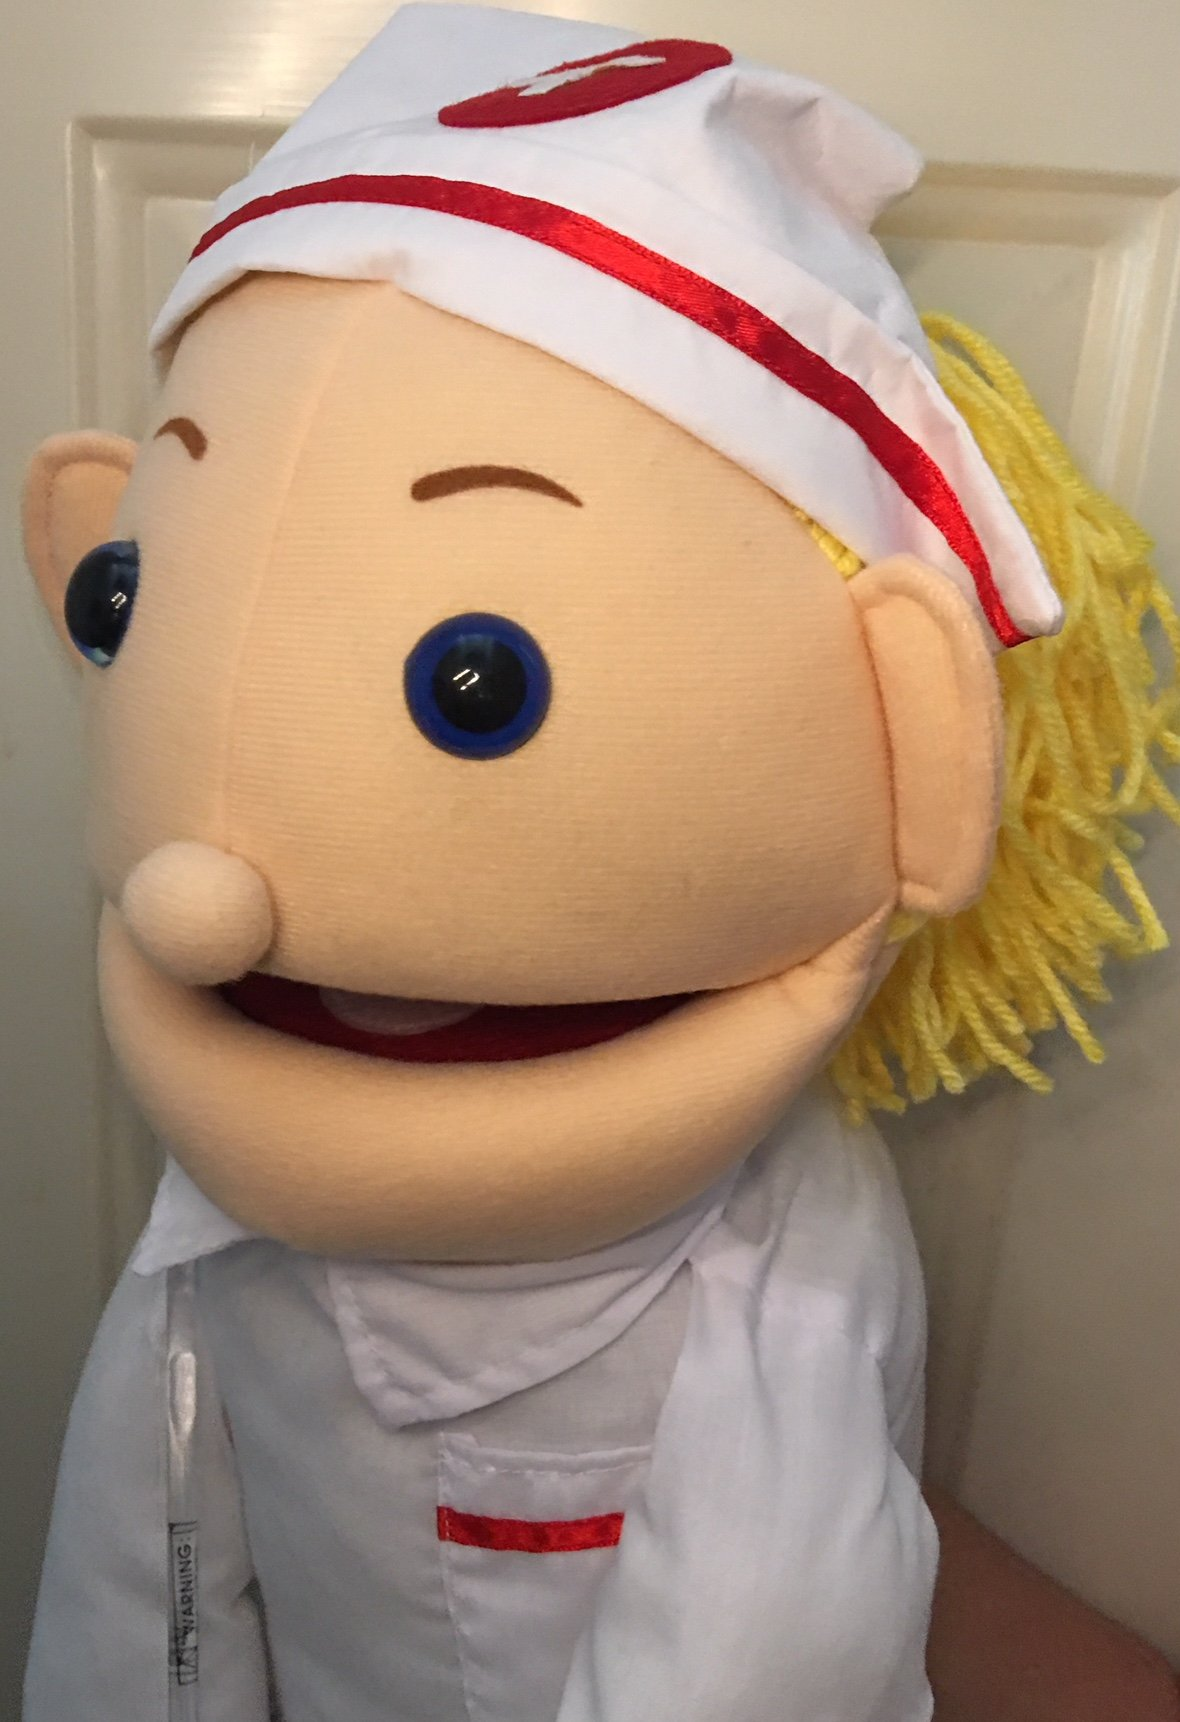 28'' Blonde Nurse Puppet, Full Body, Ventriloquist Style Puppet by Puppets4u (Image #1)